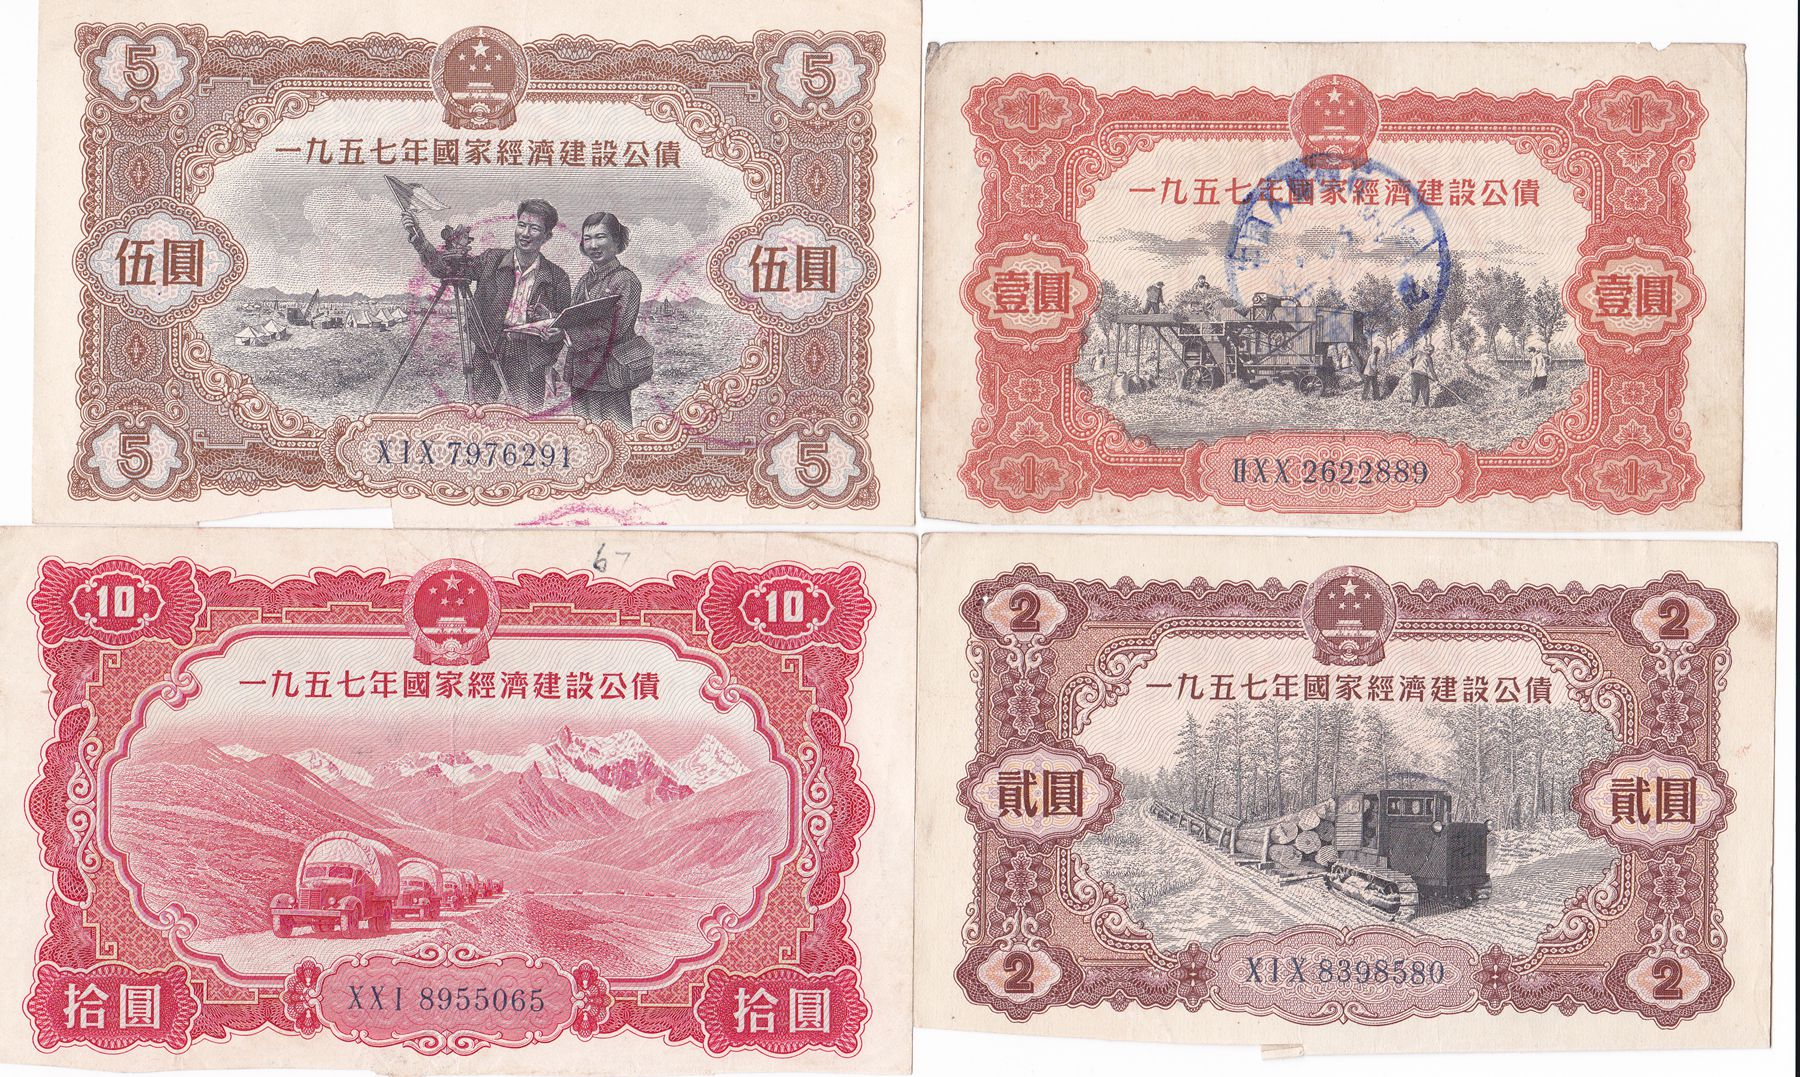 B6100, China 4% Construction Bond 4 Pcs 10,000 to 100,000 Dollars, 1957